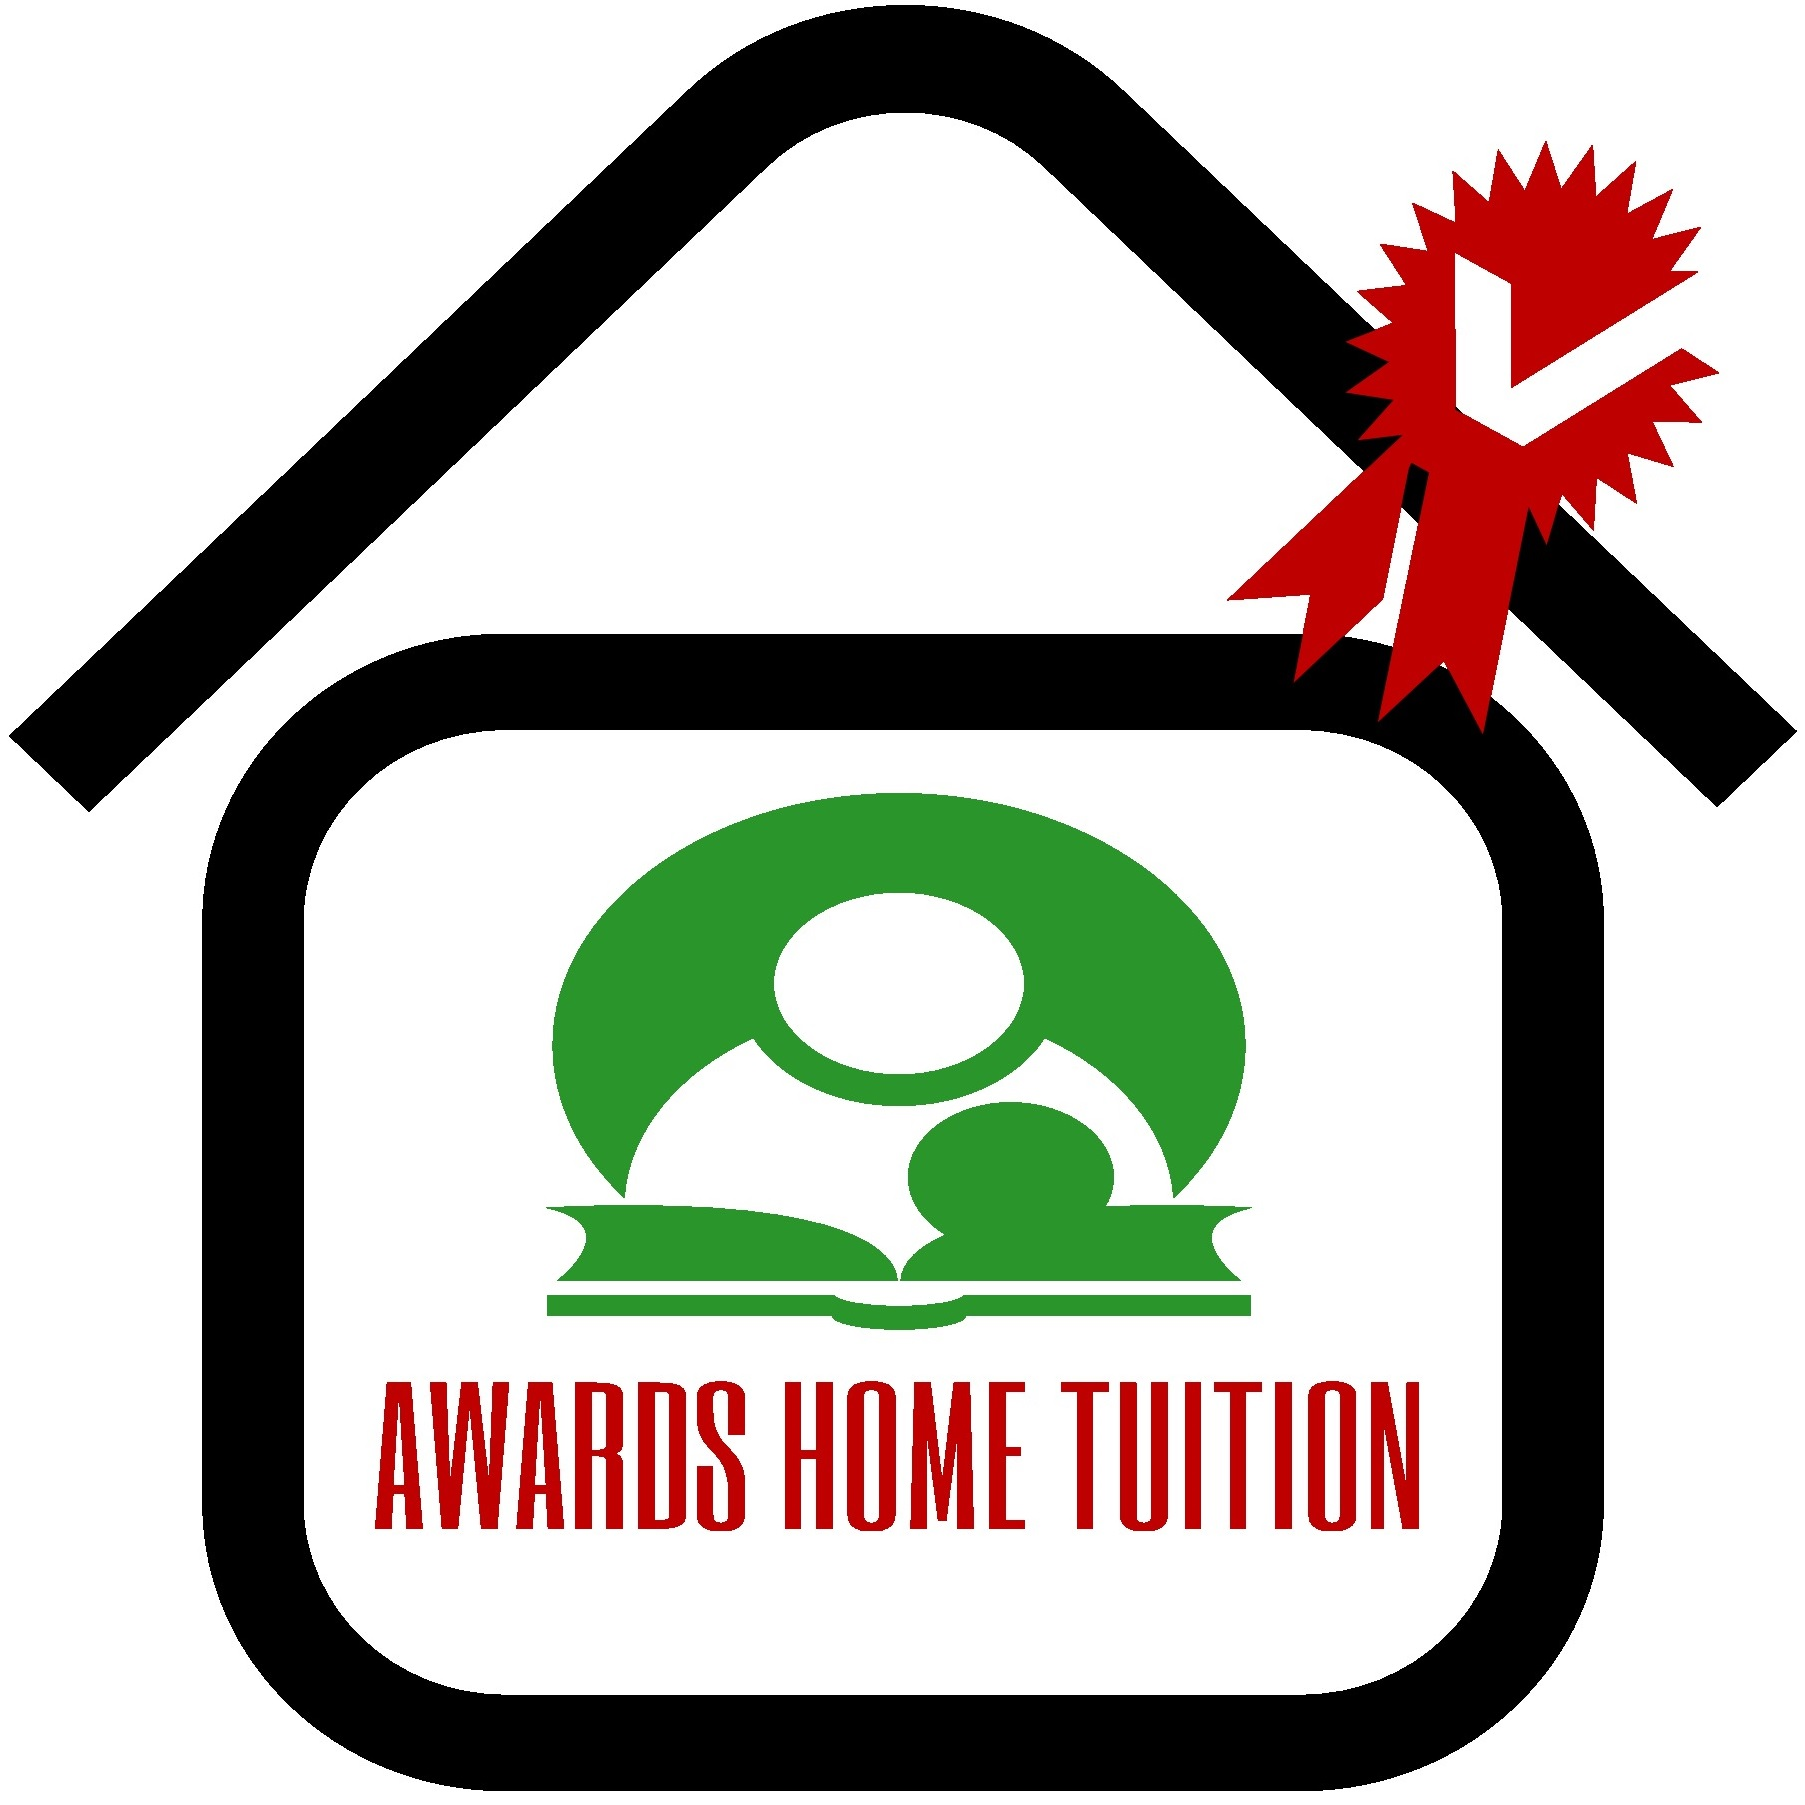 Awards Home Tuition